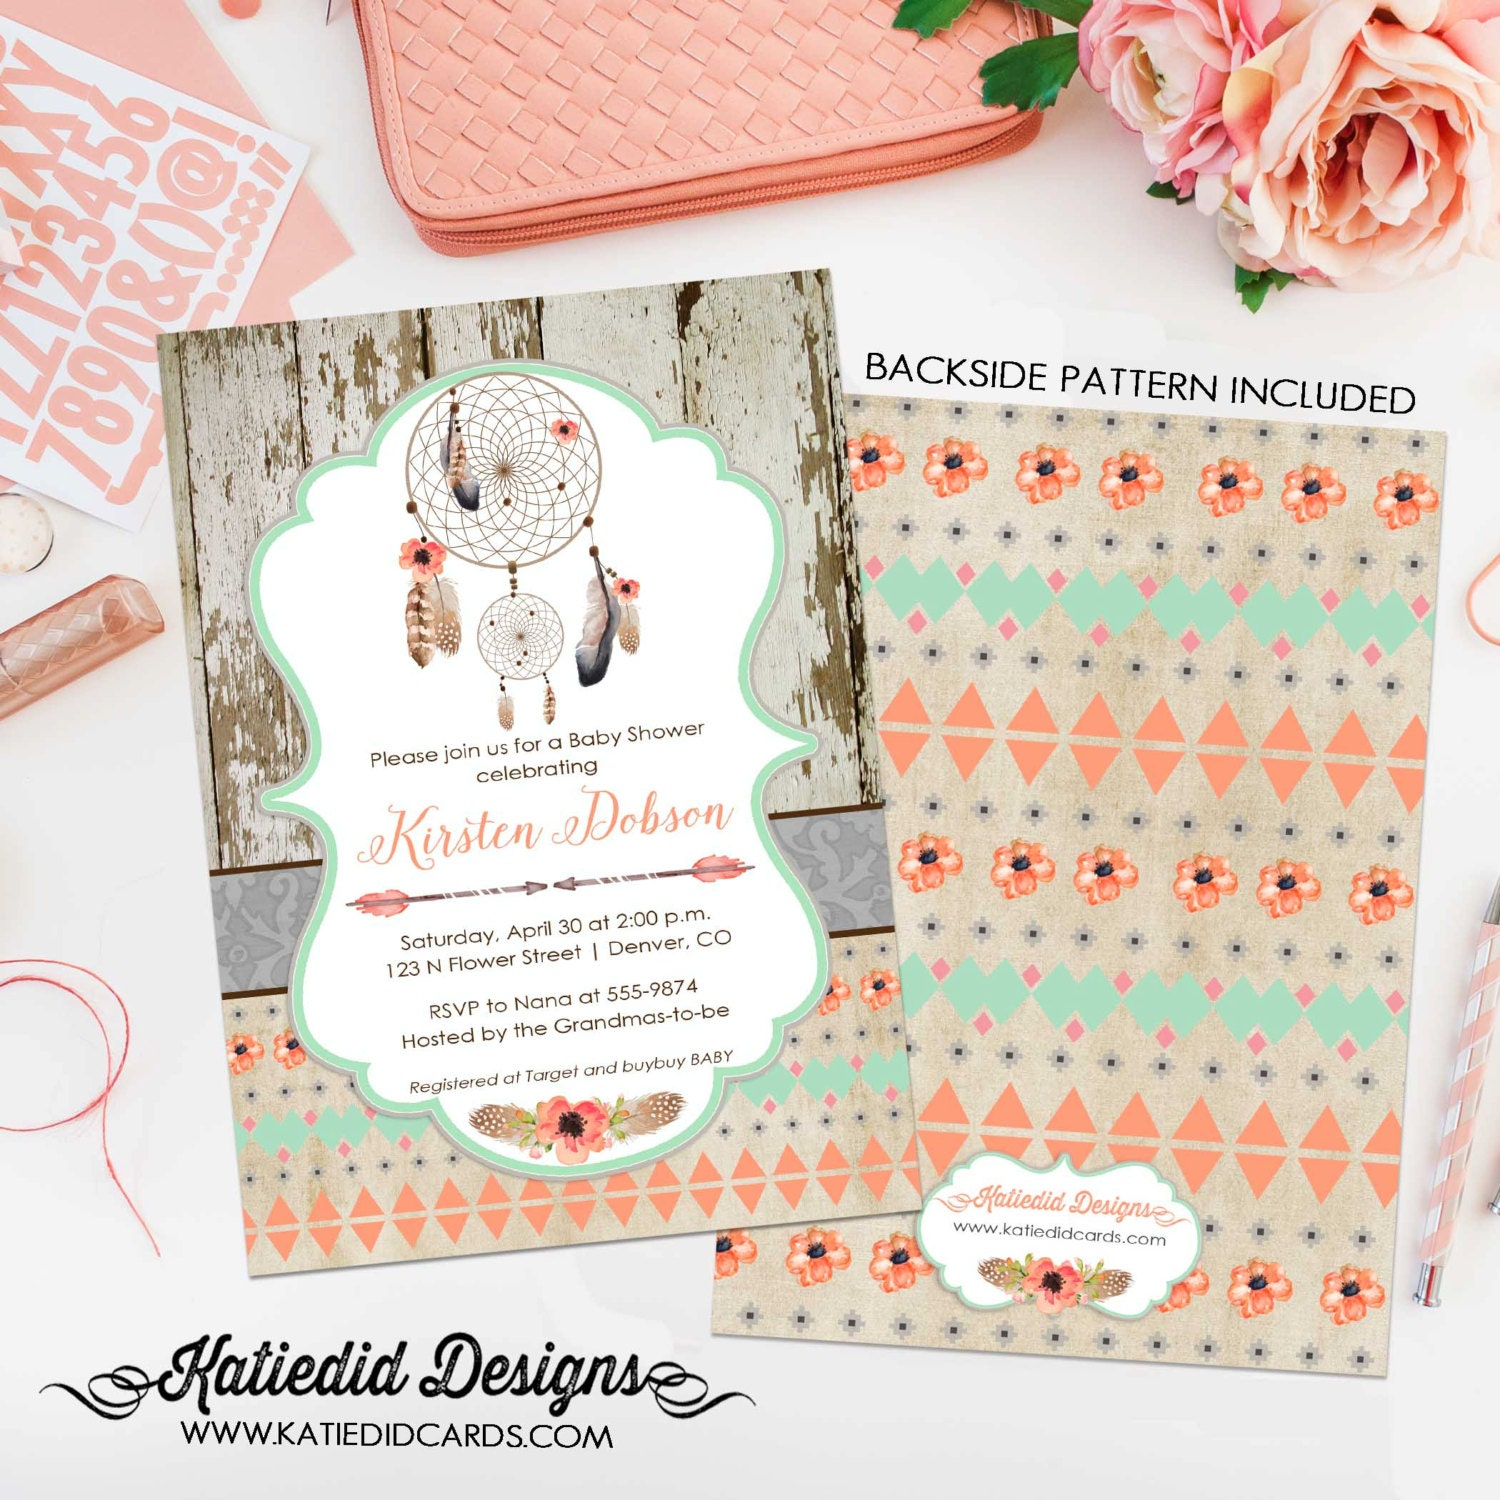 Rustic Baby Girl Shower Invitation Boho Tribal Dreamcatcher Floral Chic Invite Mint Coral Co Ed 1347 Katiedid Designs